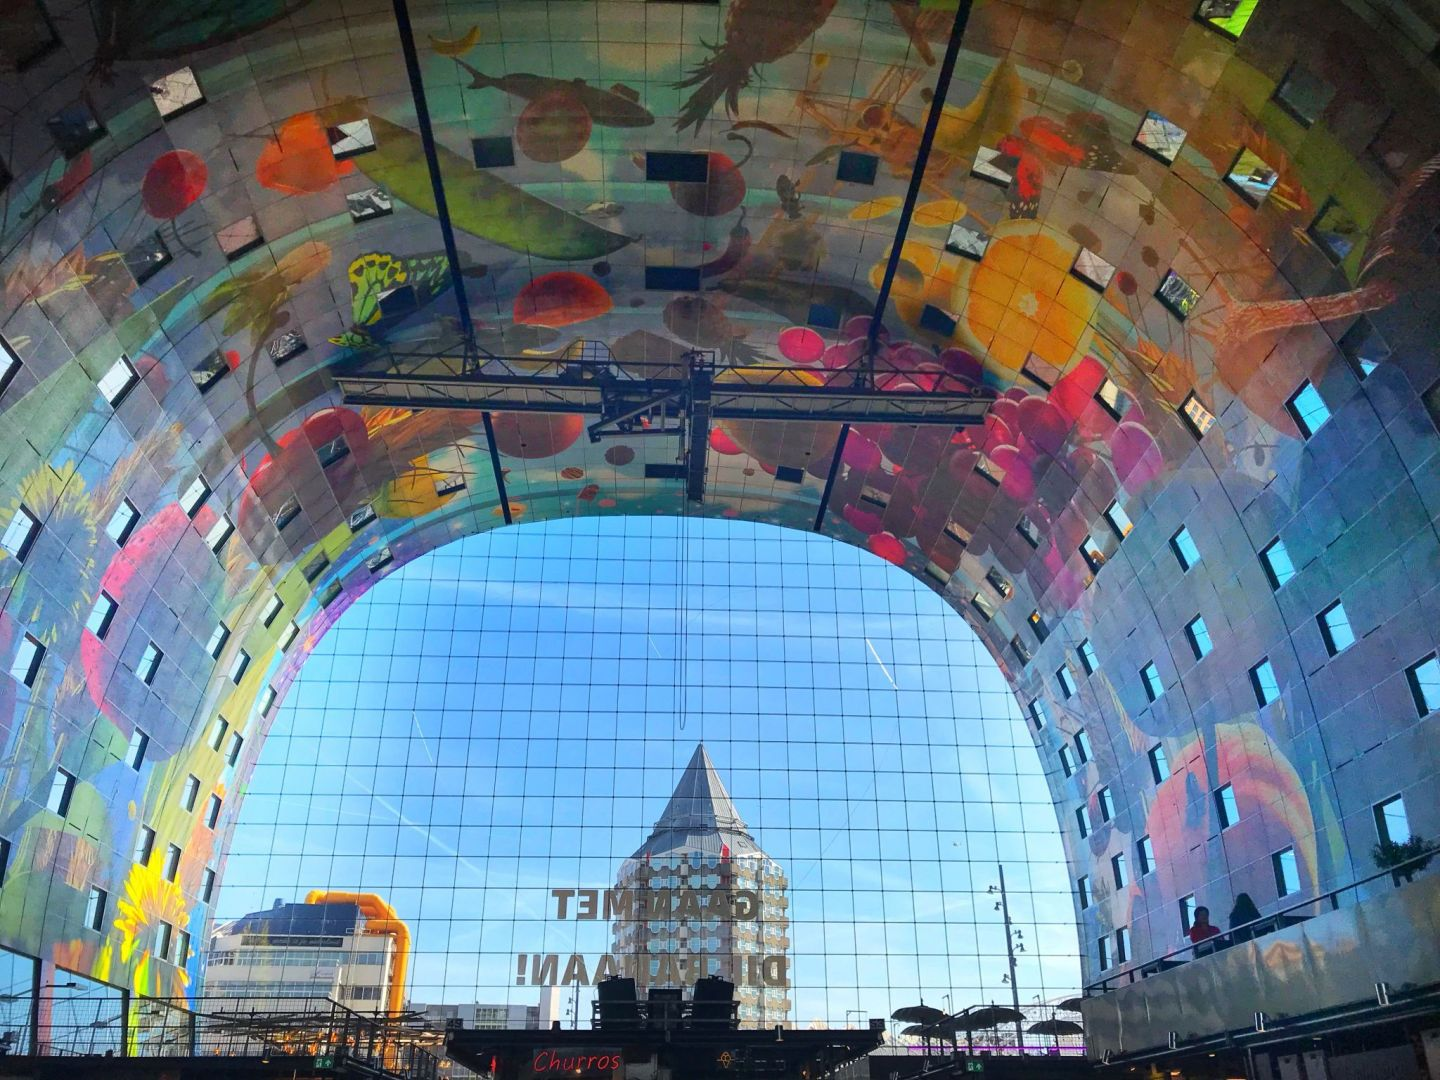 Colourful view of Het Pootlood Pencil Building from Markthal Rotterdam